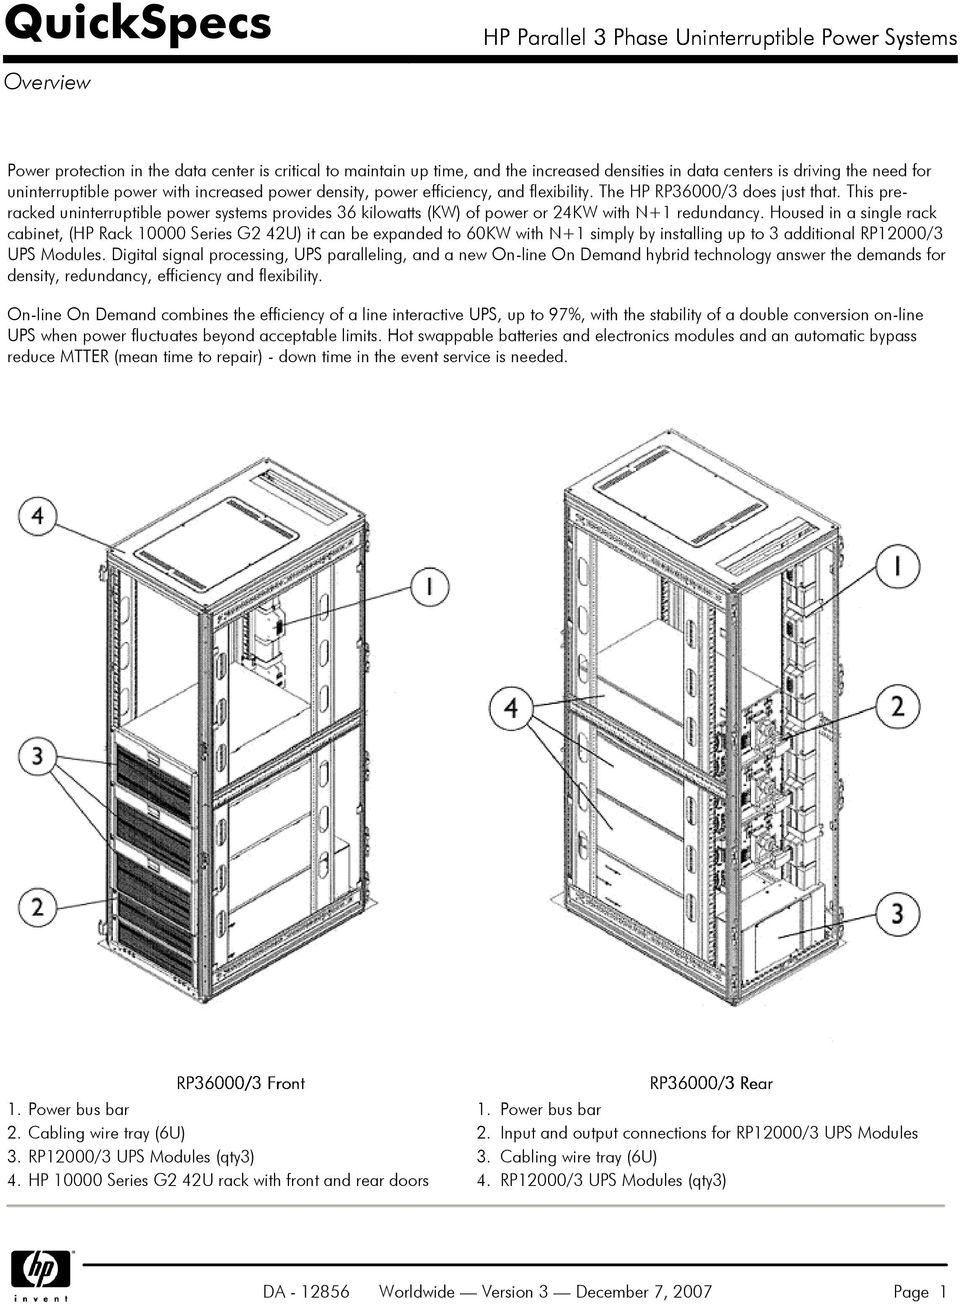 Quickspecs Hp Parallel 3 Phase Uninterruptible Power Systems L15 30 Wiring Three Diagram Housed In A Single Rack Cabinet 10000 Series G2 42u It